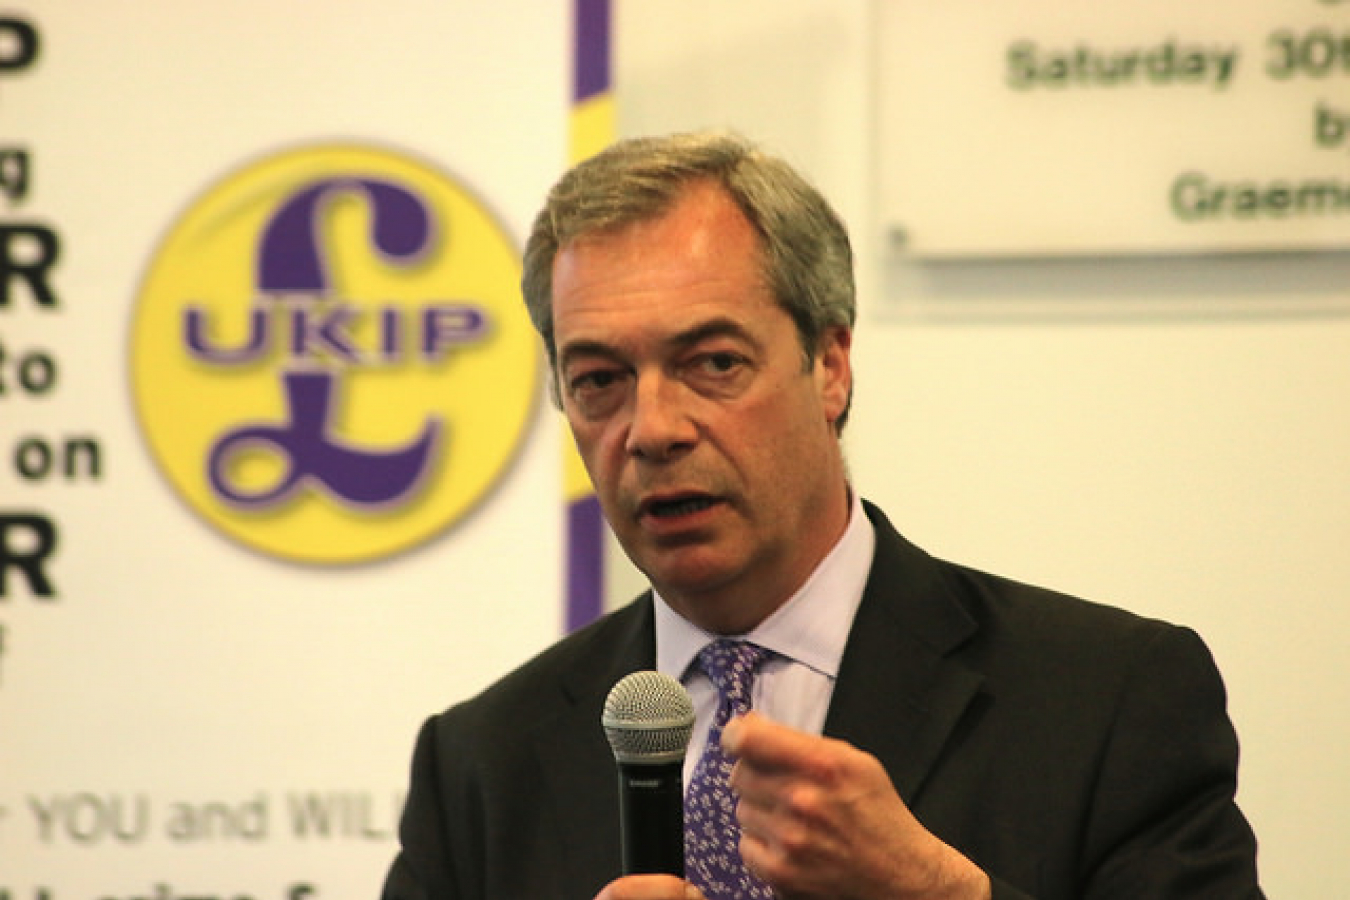 Nigel Farage former leader of pro-Brexit UKIP